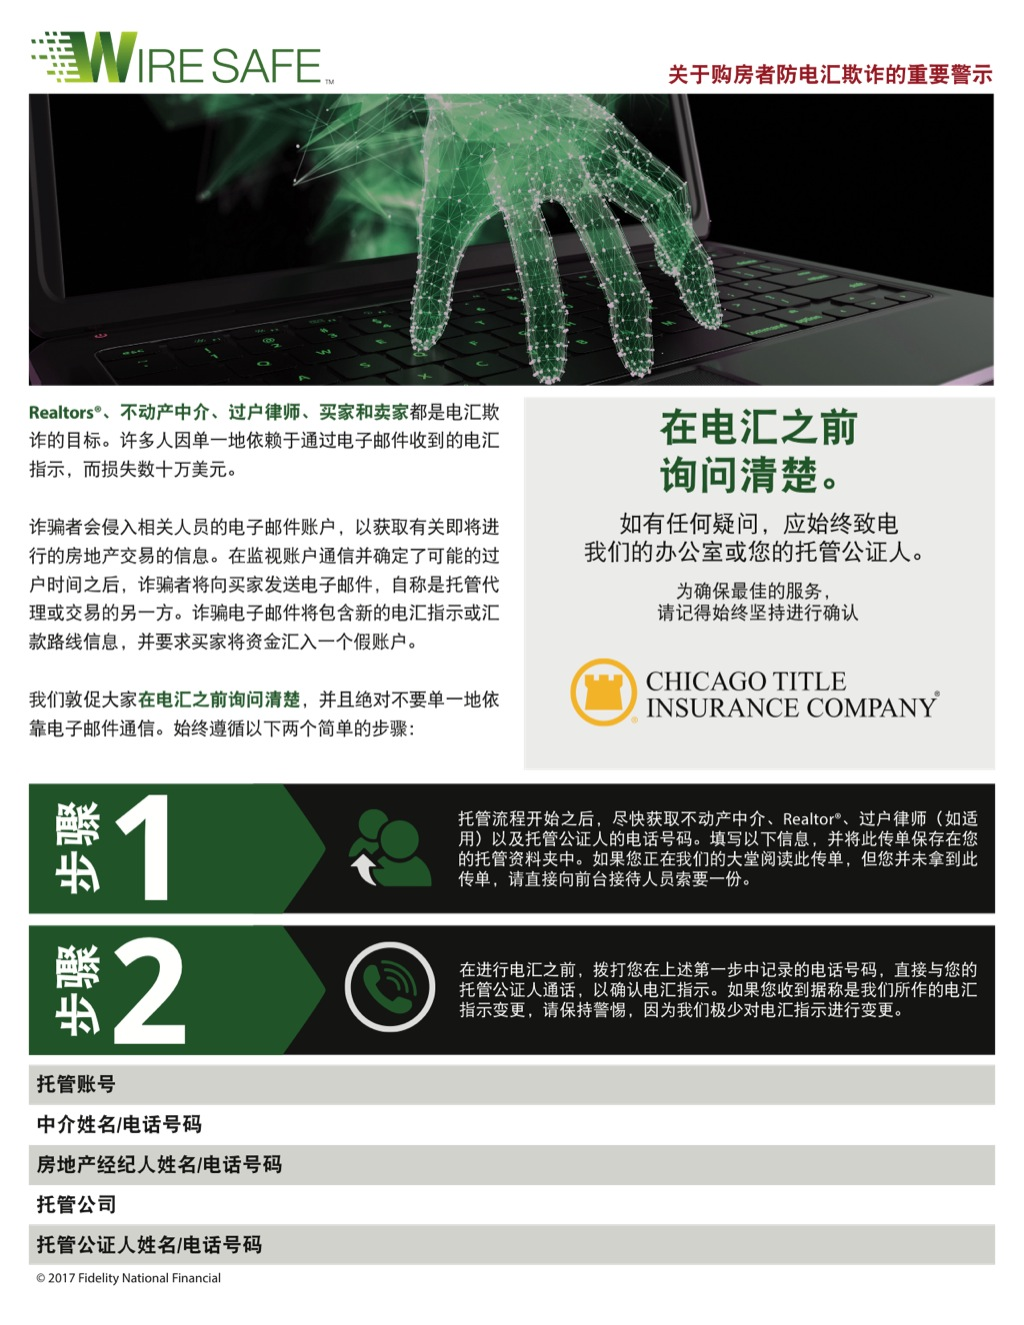 Corefact Wire Safe Buyer Flyer - Chinese - CTIC